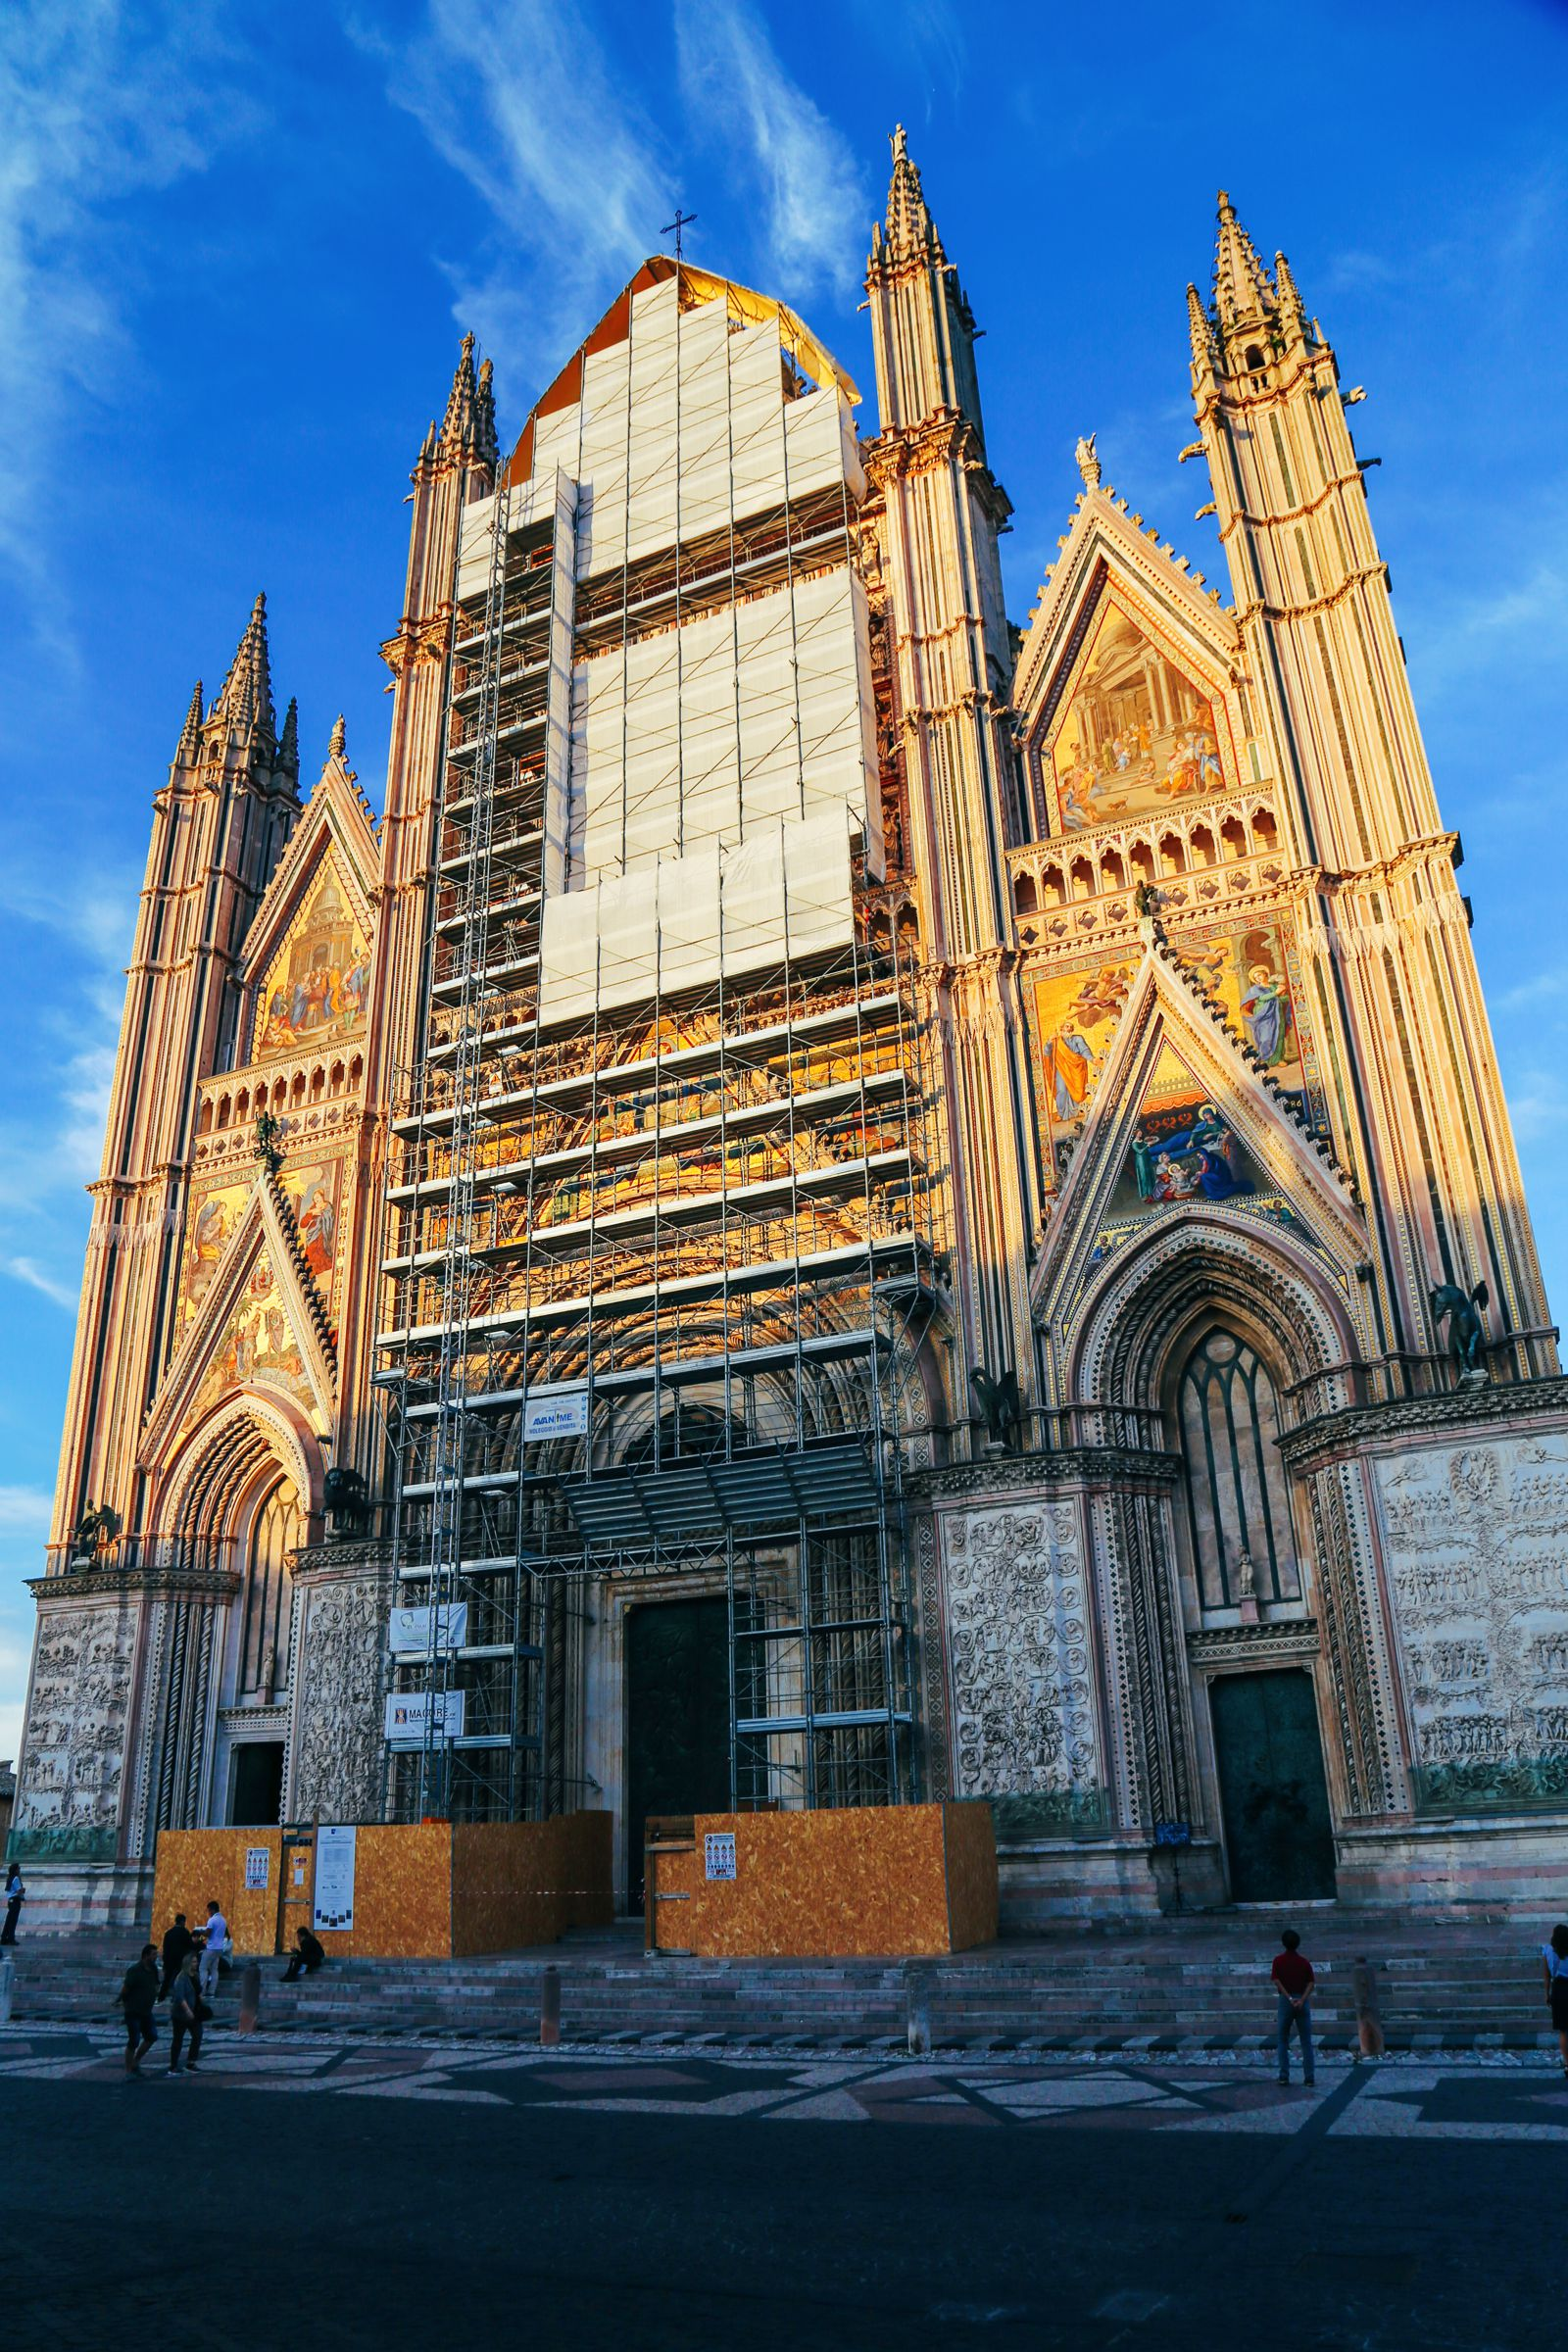 Orvieto - The Most Dramatic City In Europe (16)